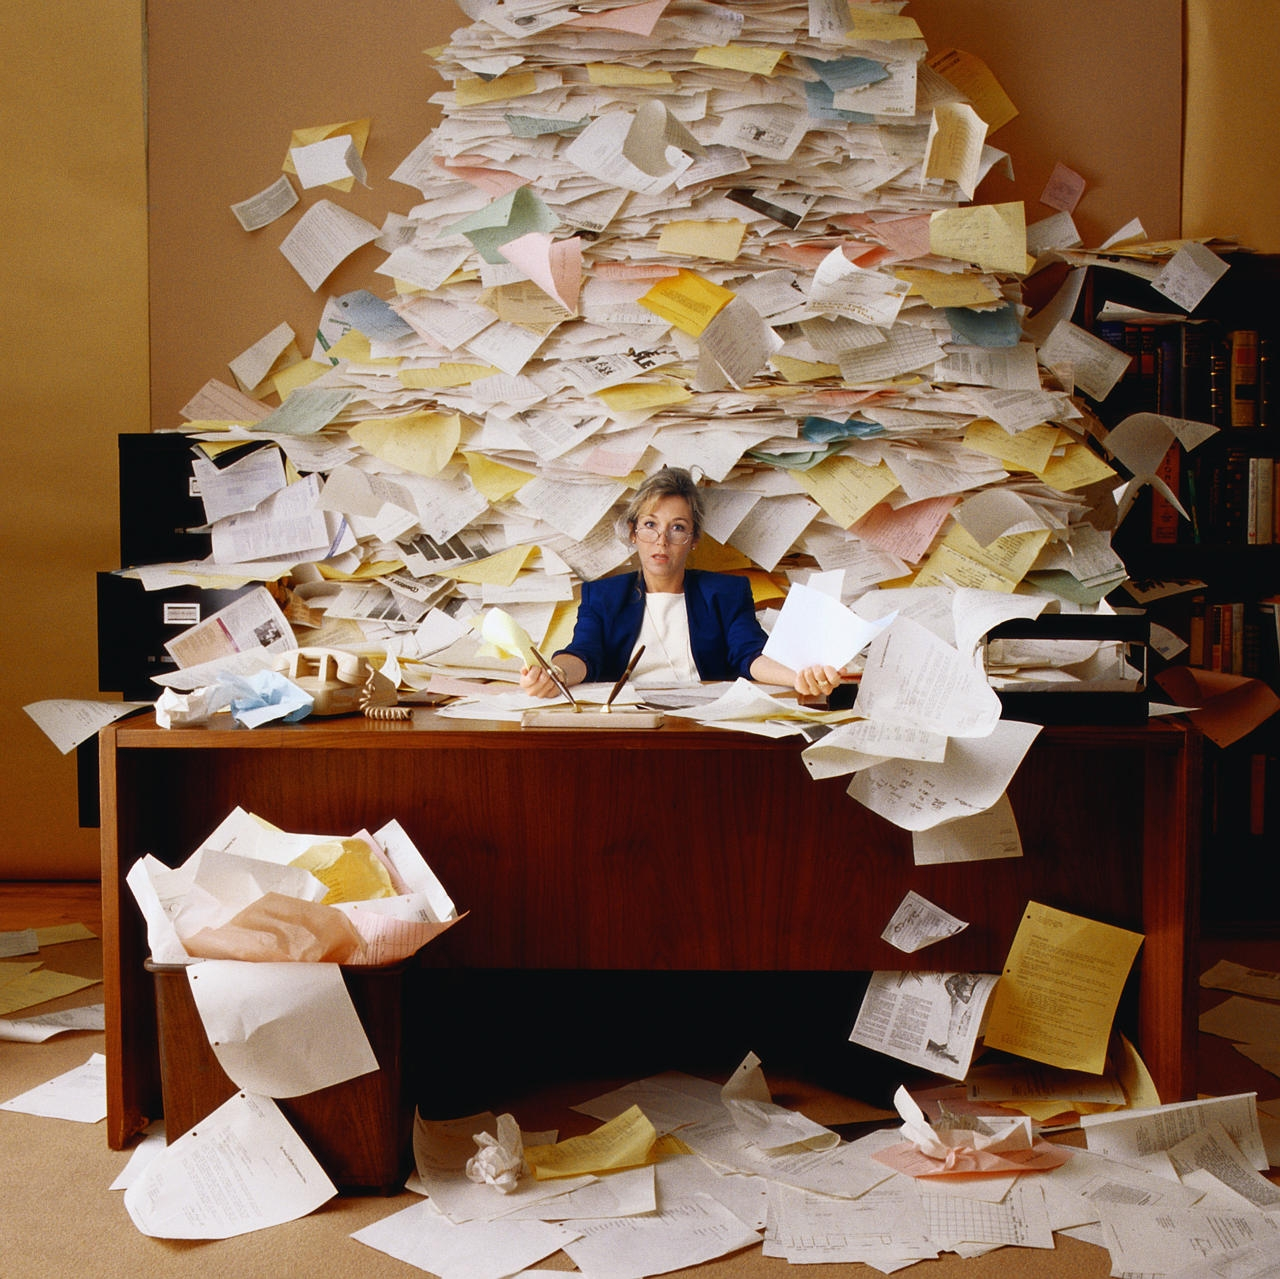 We can all use some help with paperwork now and then